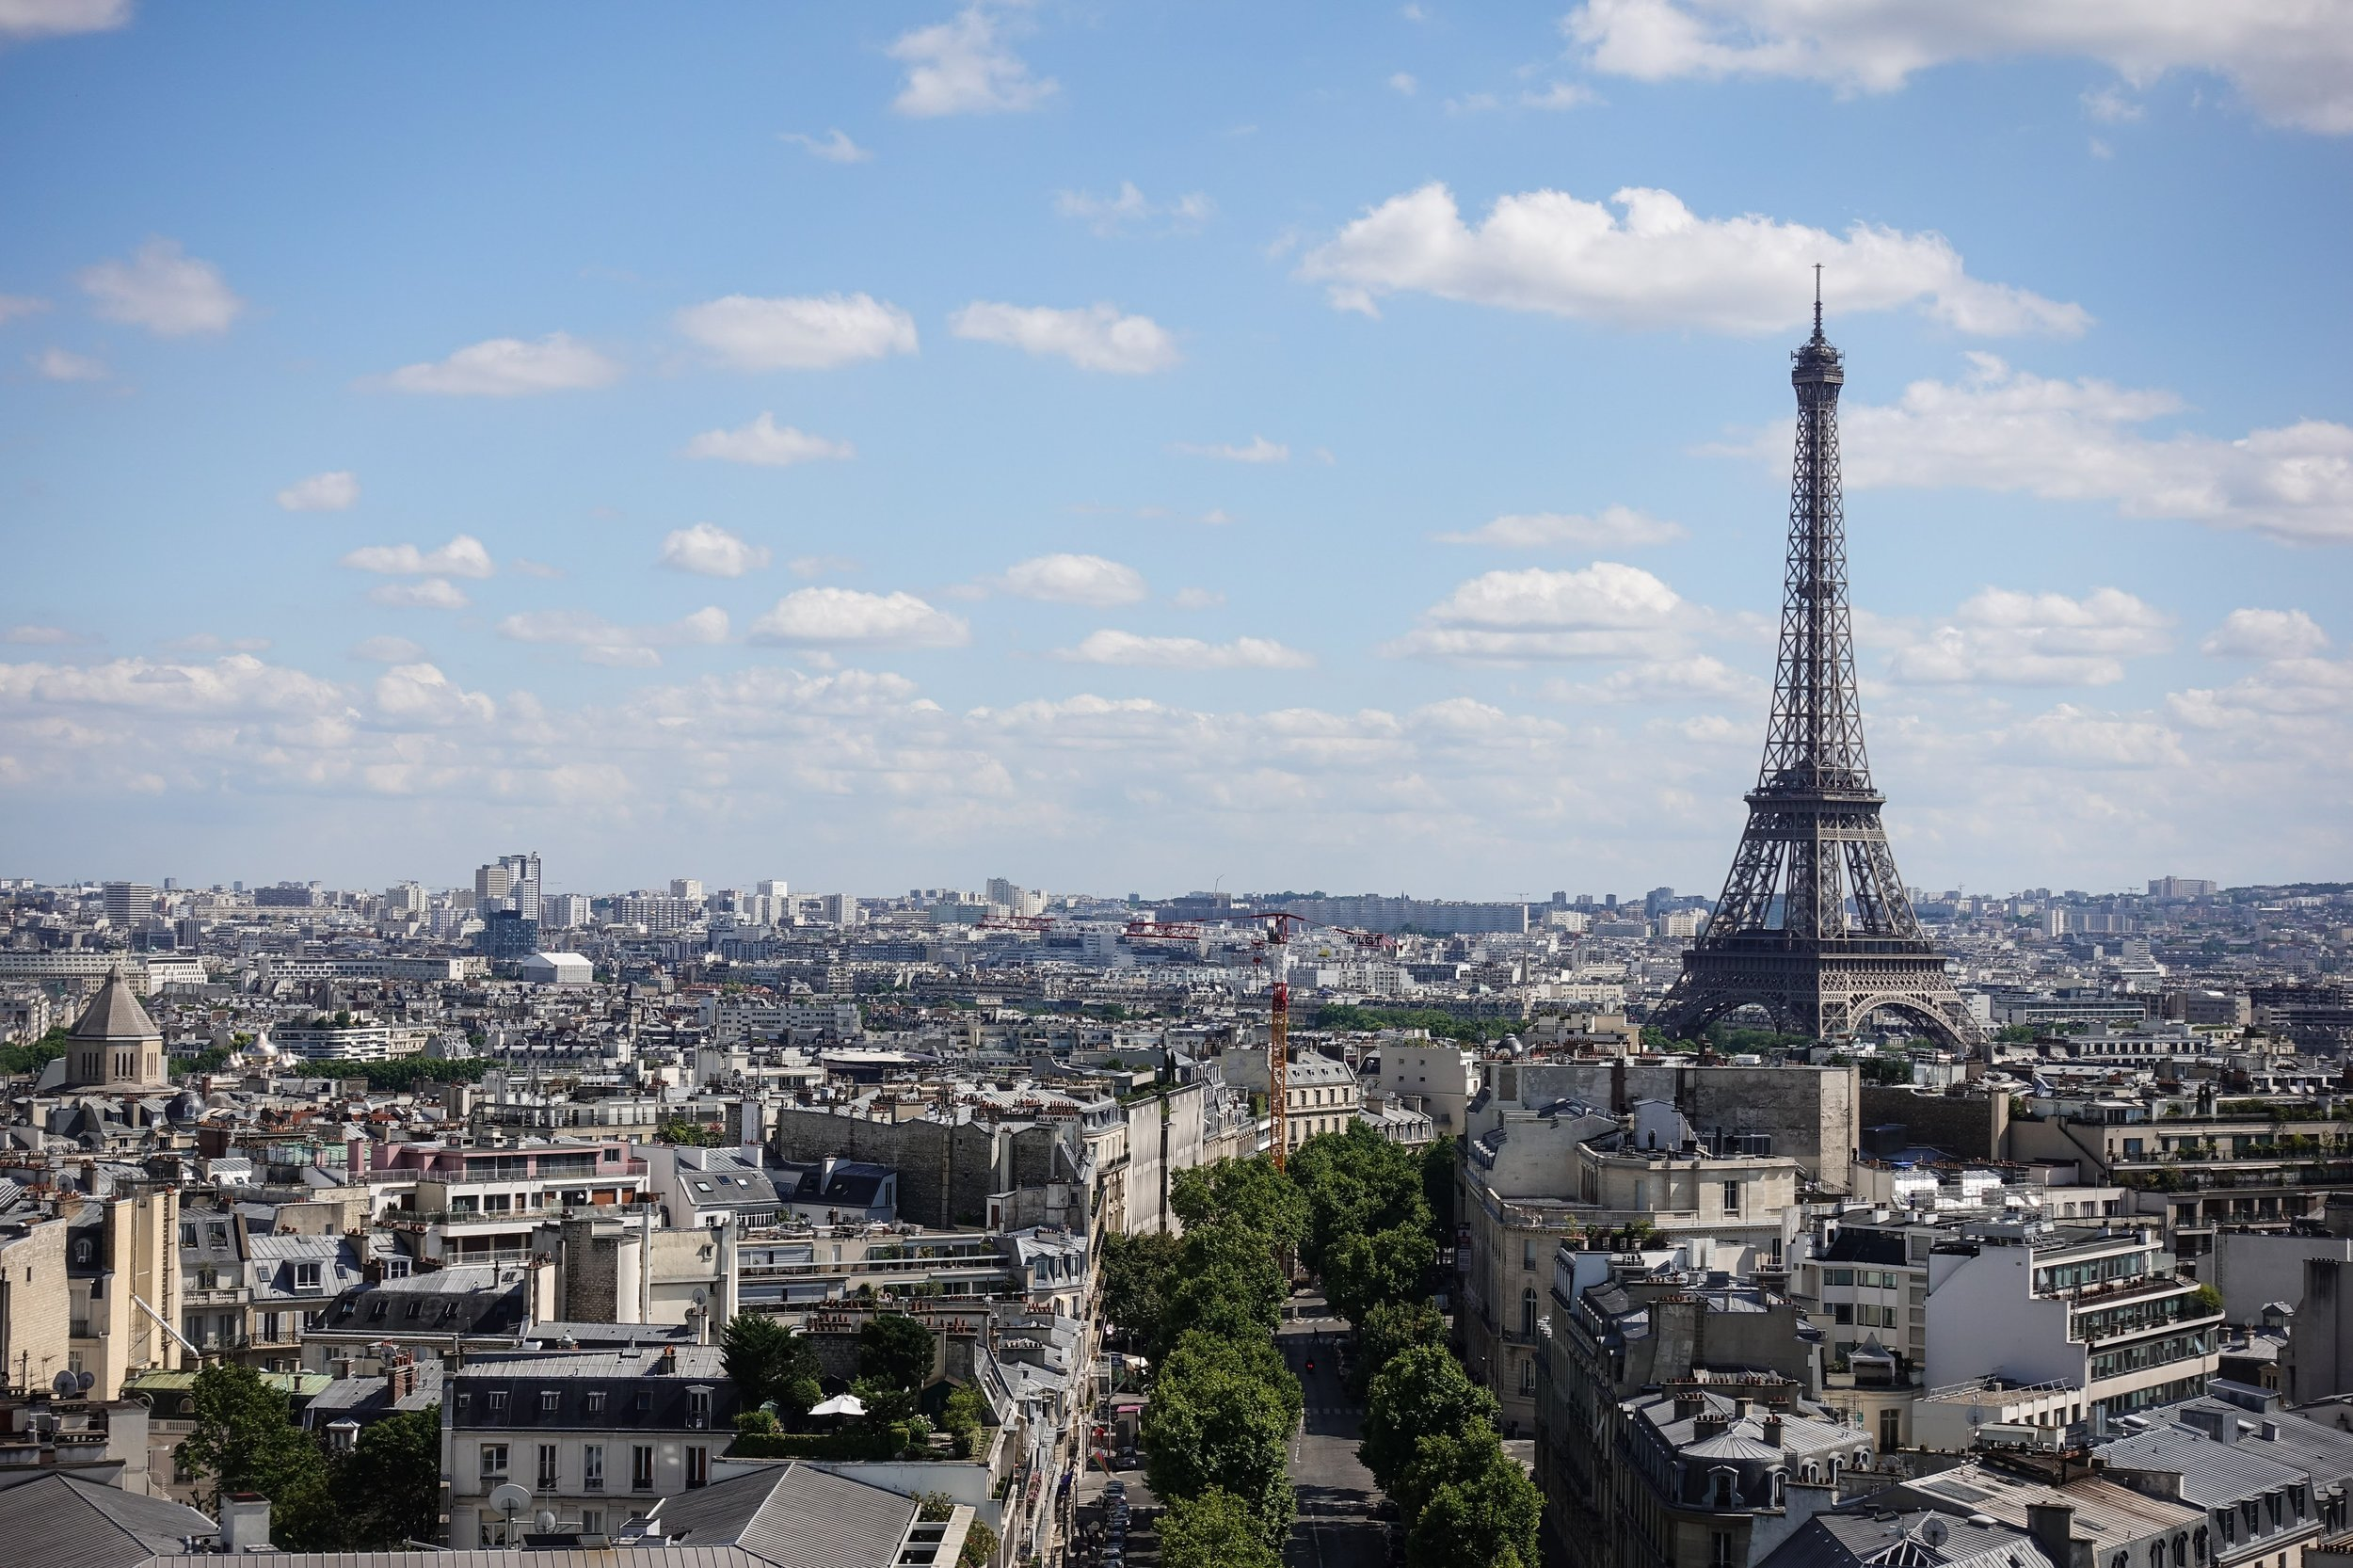 Stunning views from the top of the Arc de Triomphe